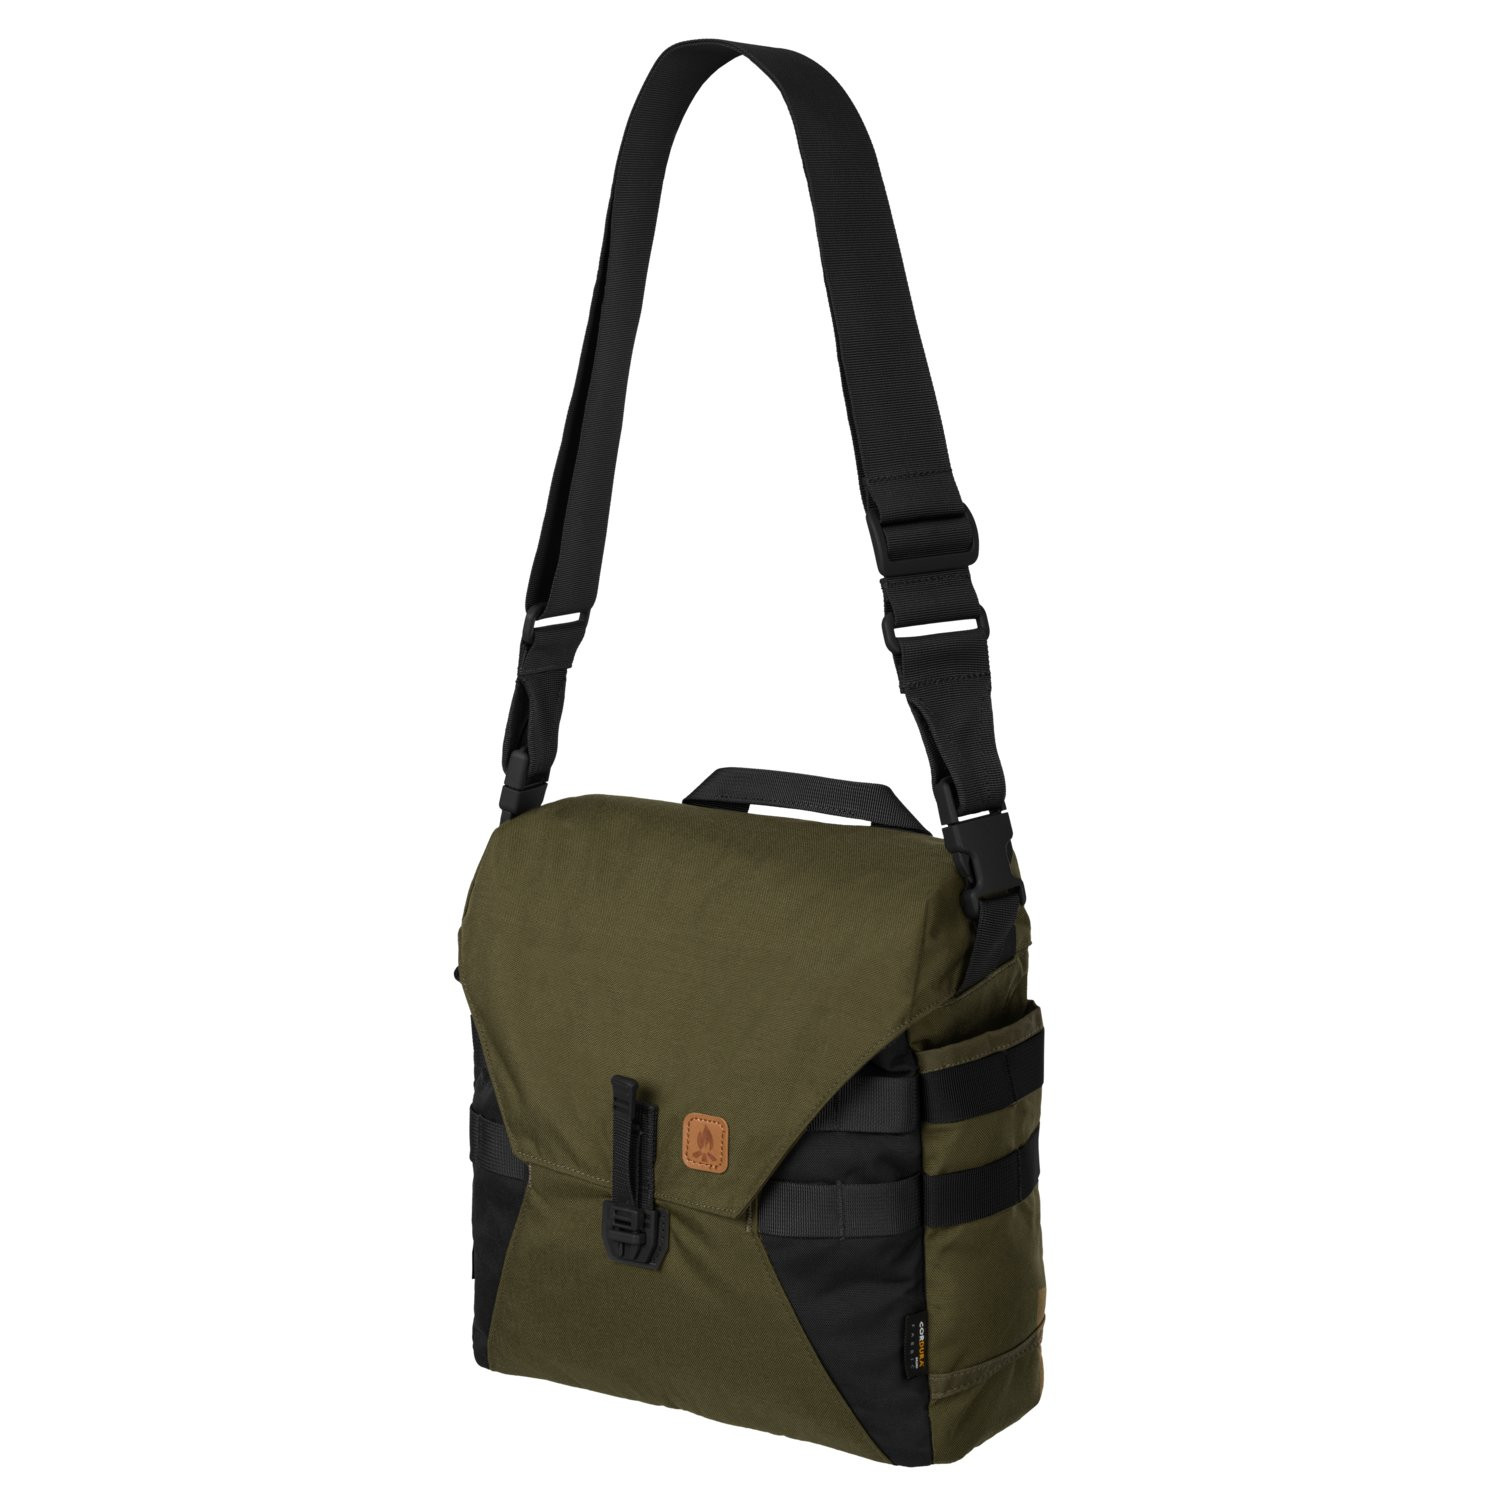 Bushcraft Haversack Bag® - Cordura® - Olive Green/Black